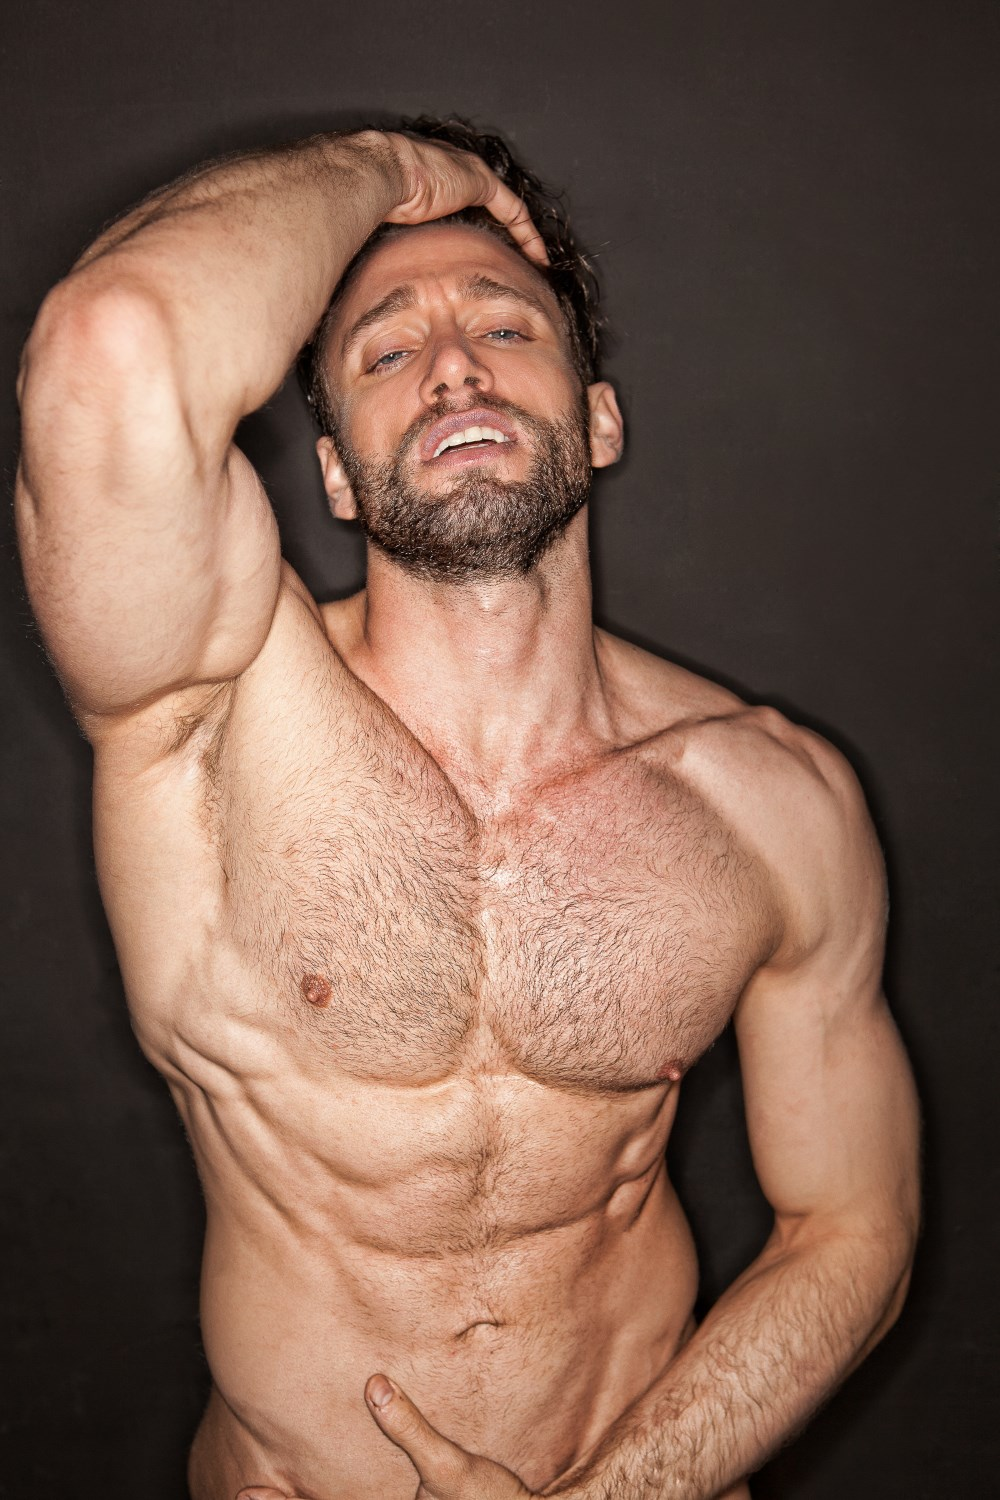 Just Hairy man muscle nude concrete